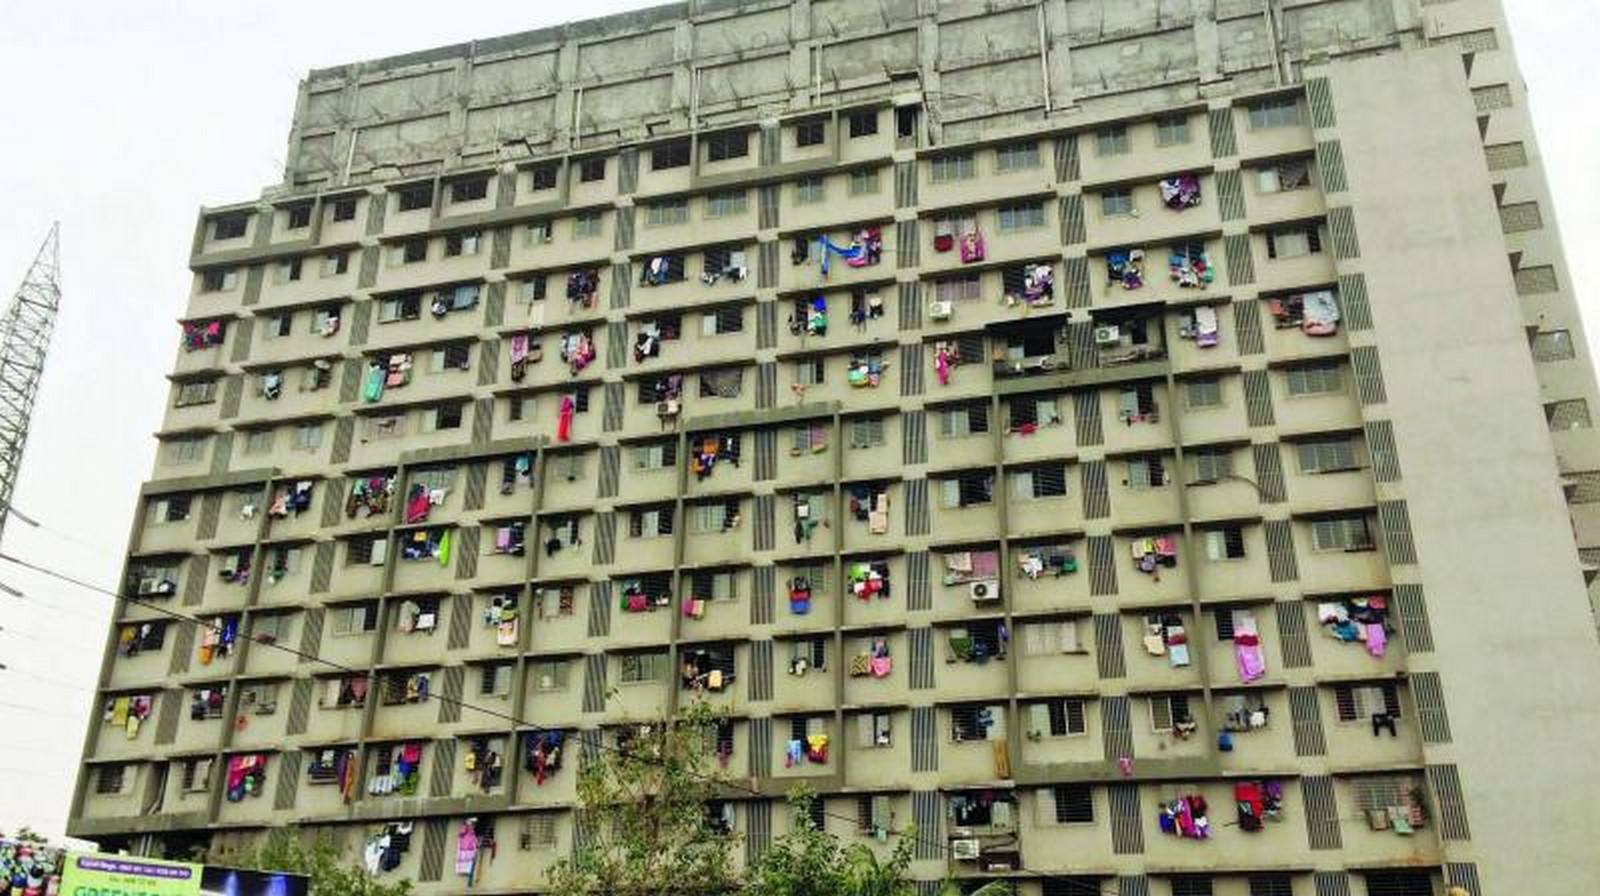 TedTalk for Architects: Mumbai's Architecture is Killing Us!! by Sameep Padora - Sheet7